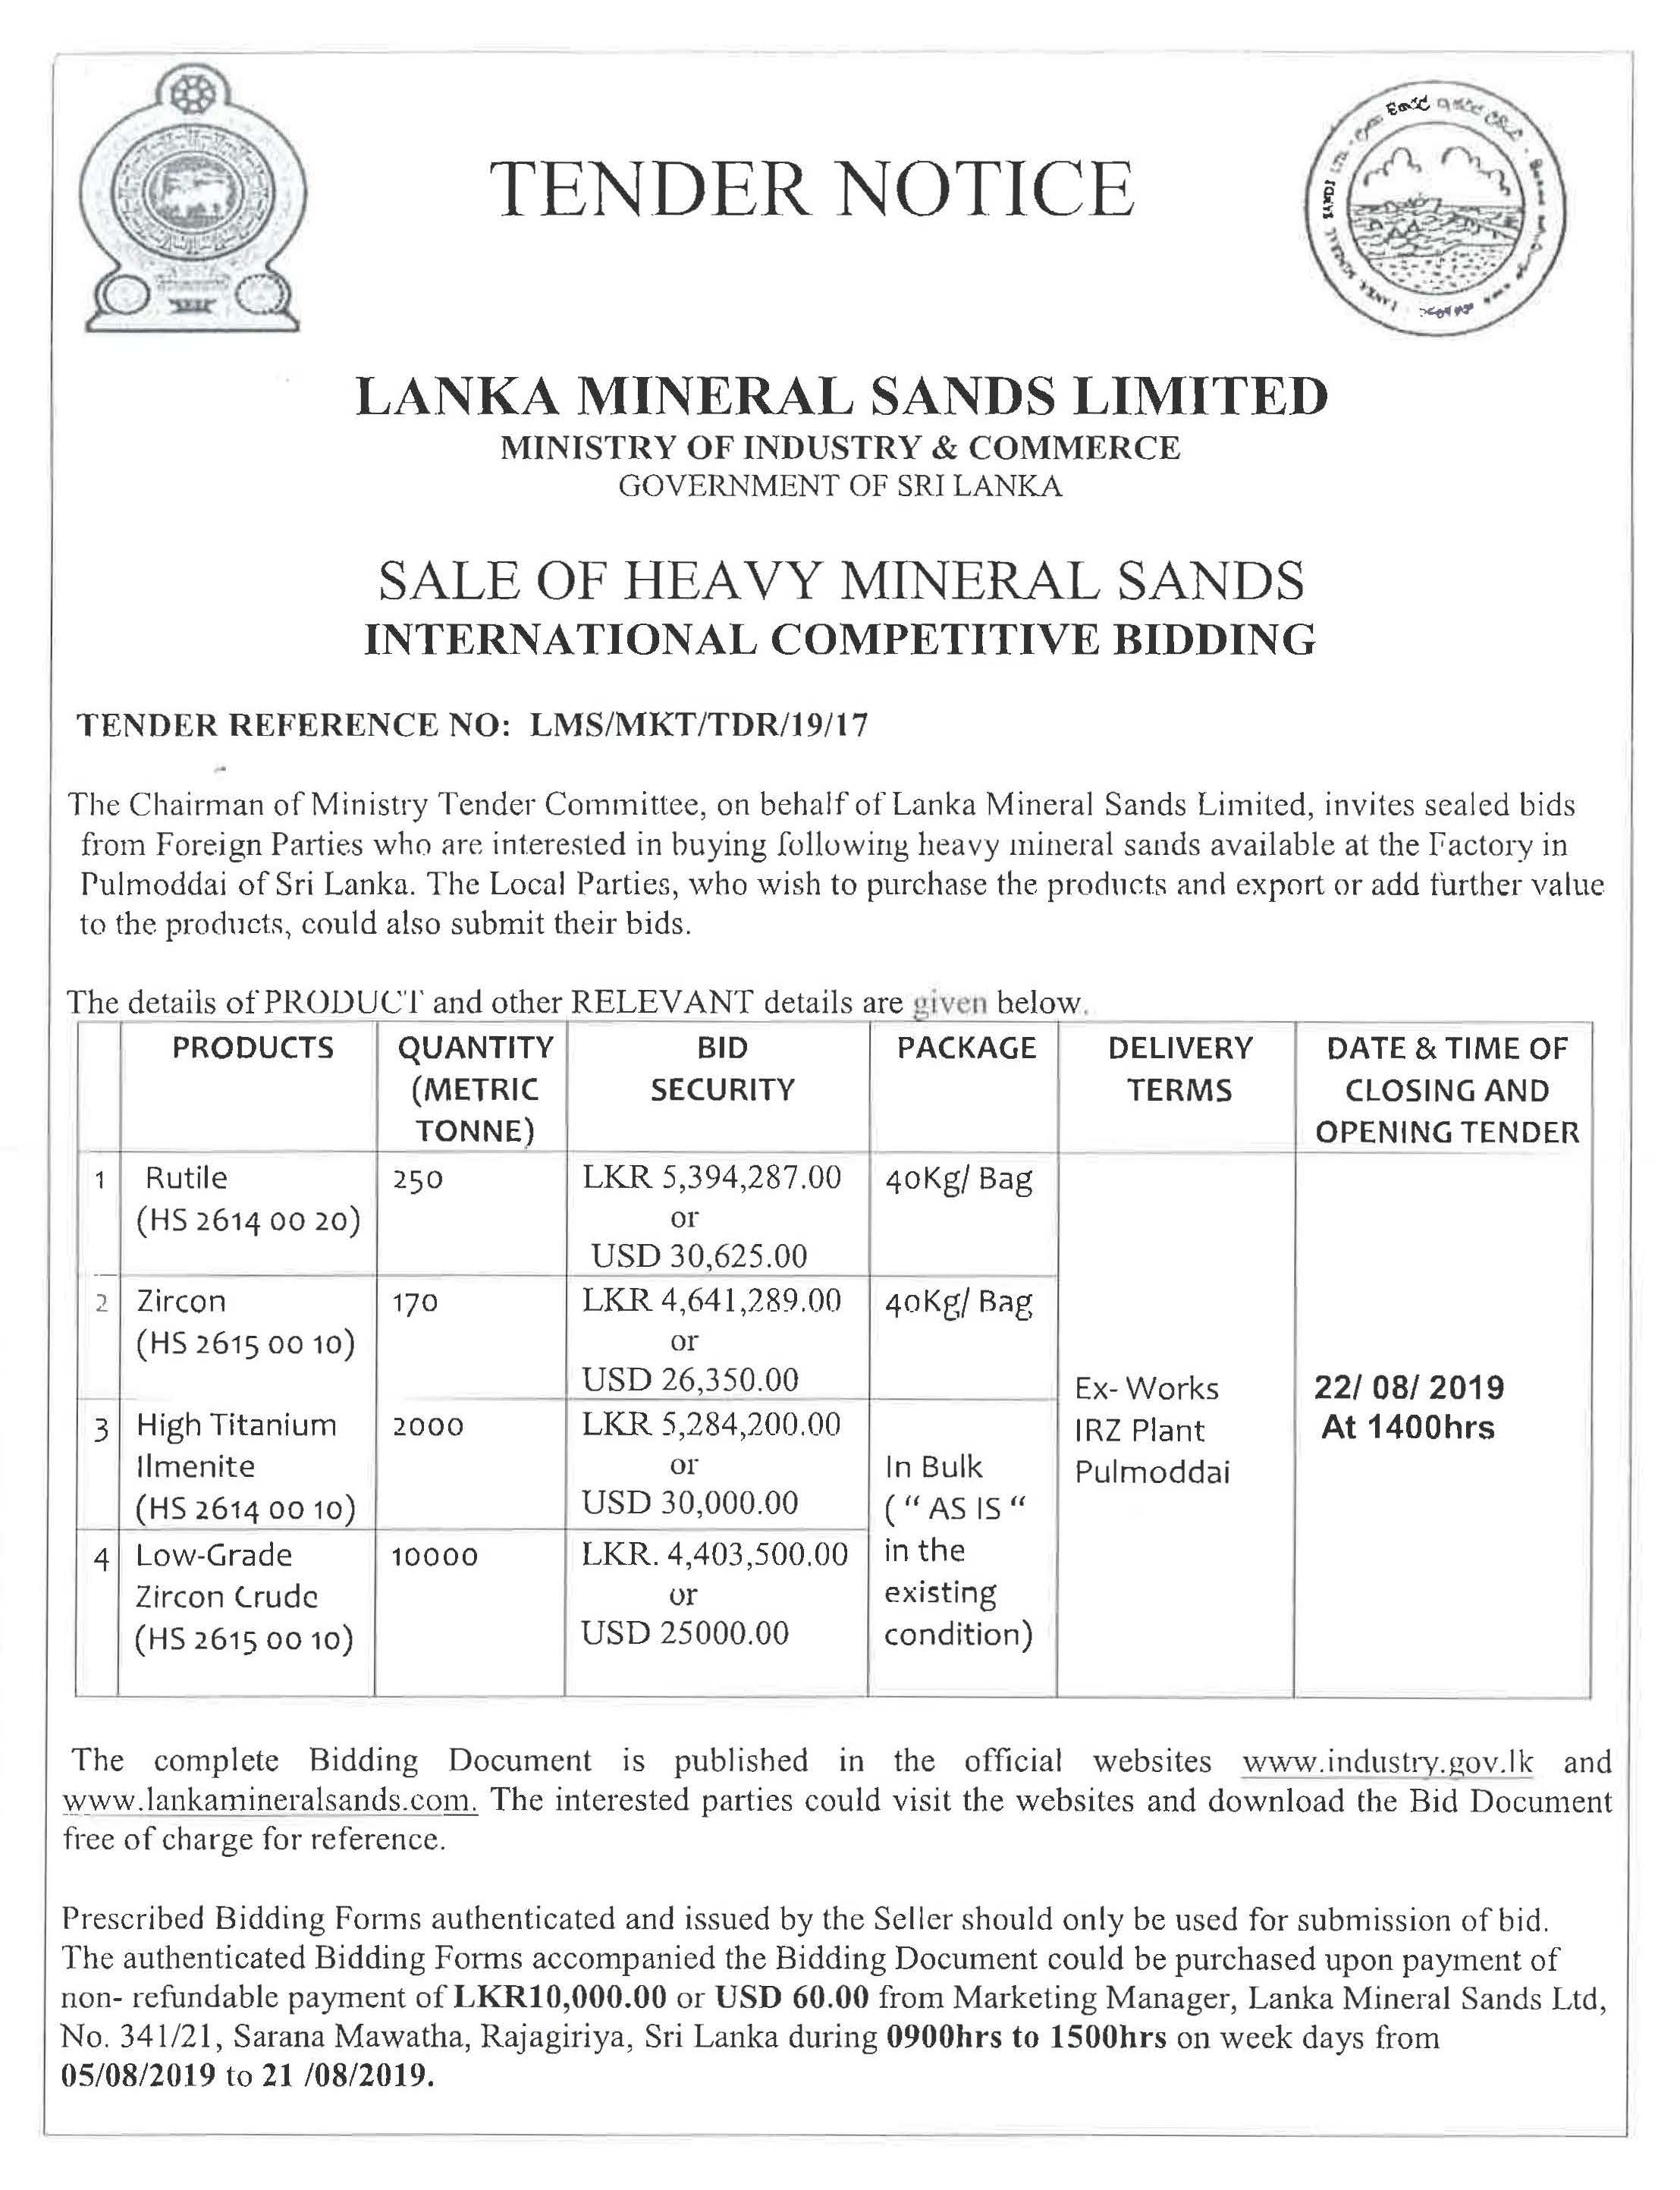 Cir 236 Bid Notice for Sale of Heavy Mineral Sands